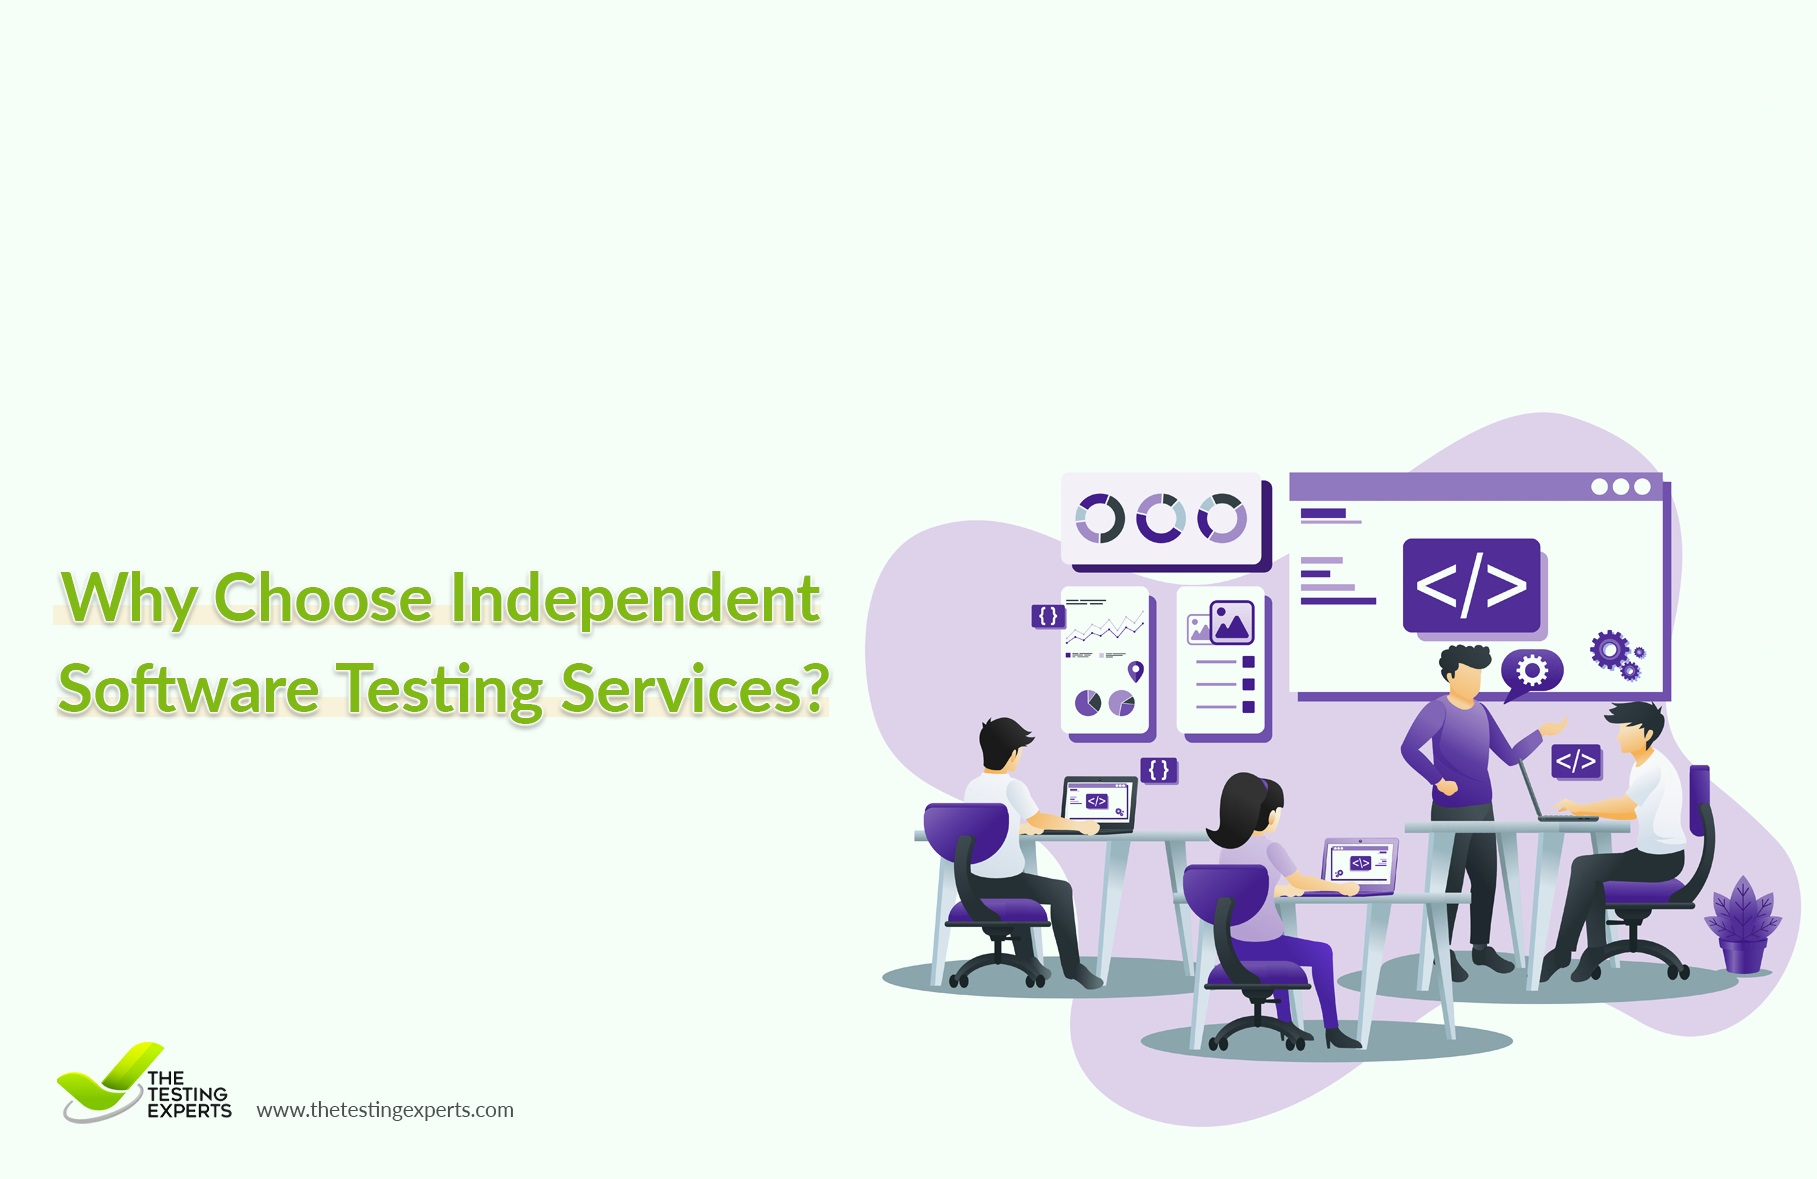 Why Choose Independent Software Testing Services?